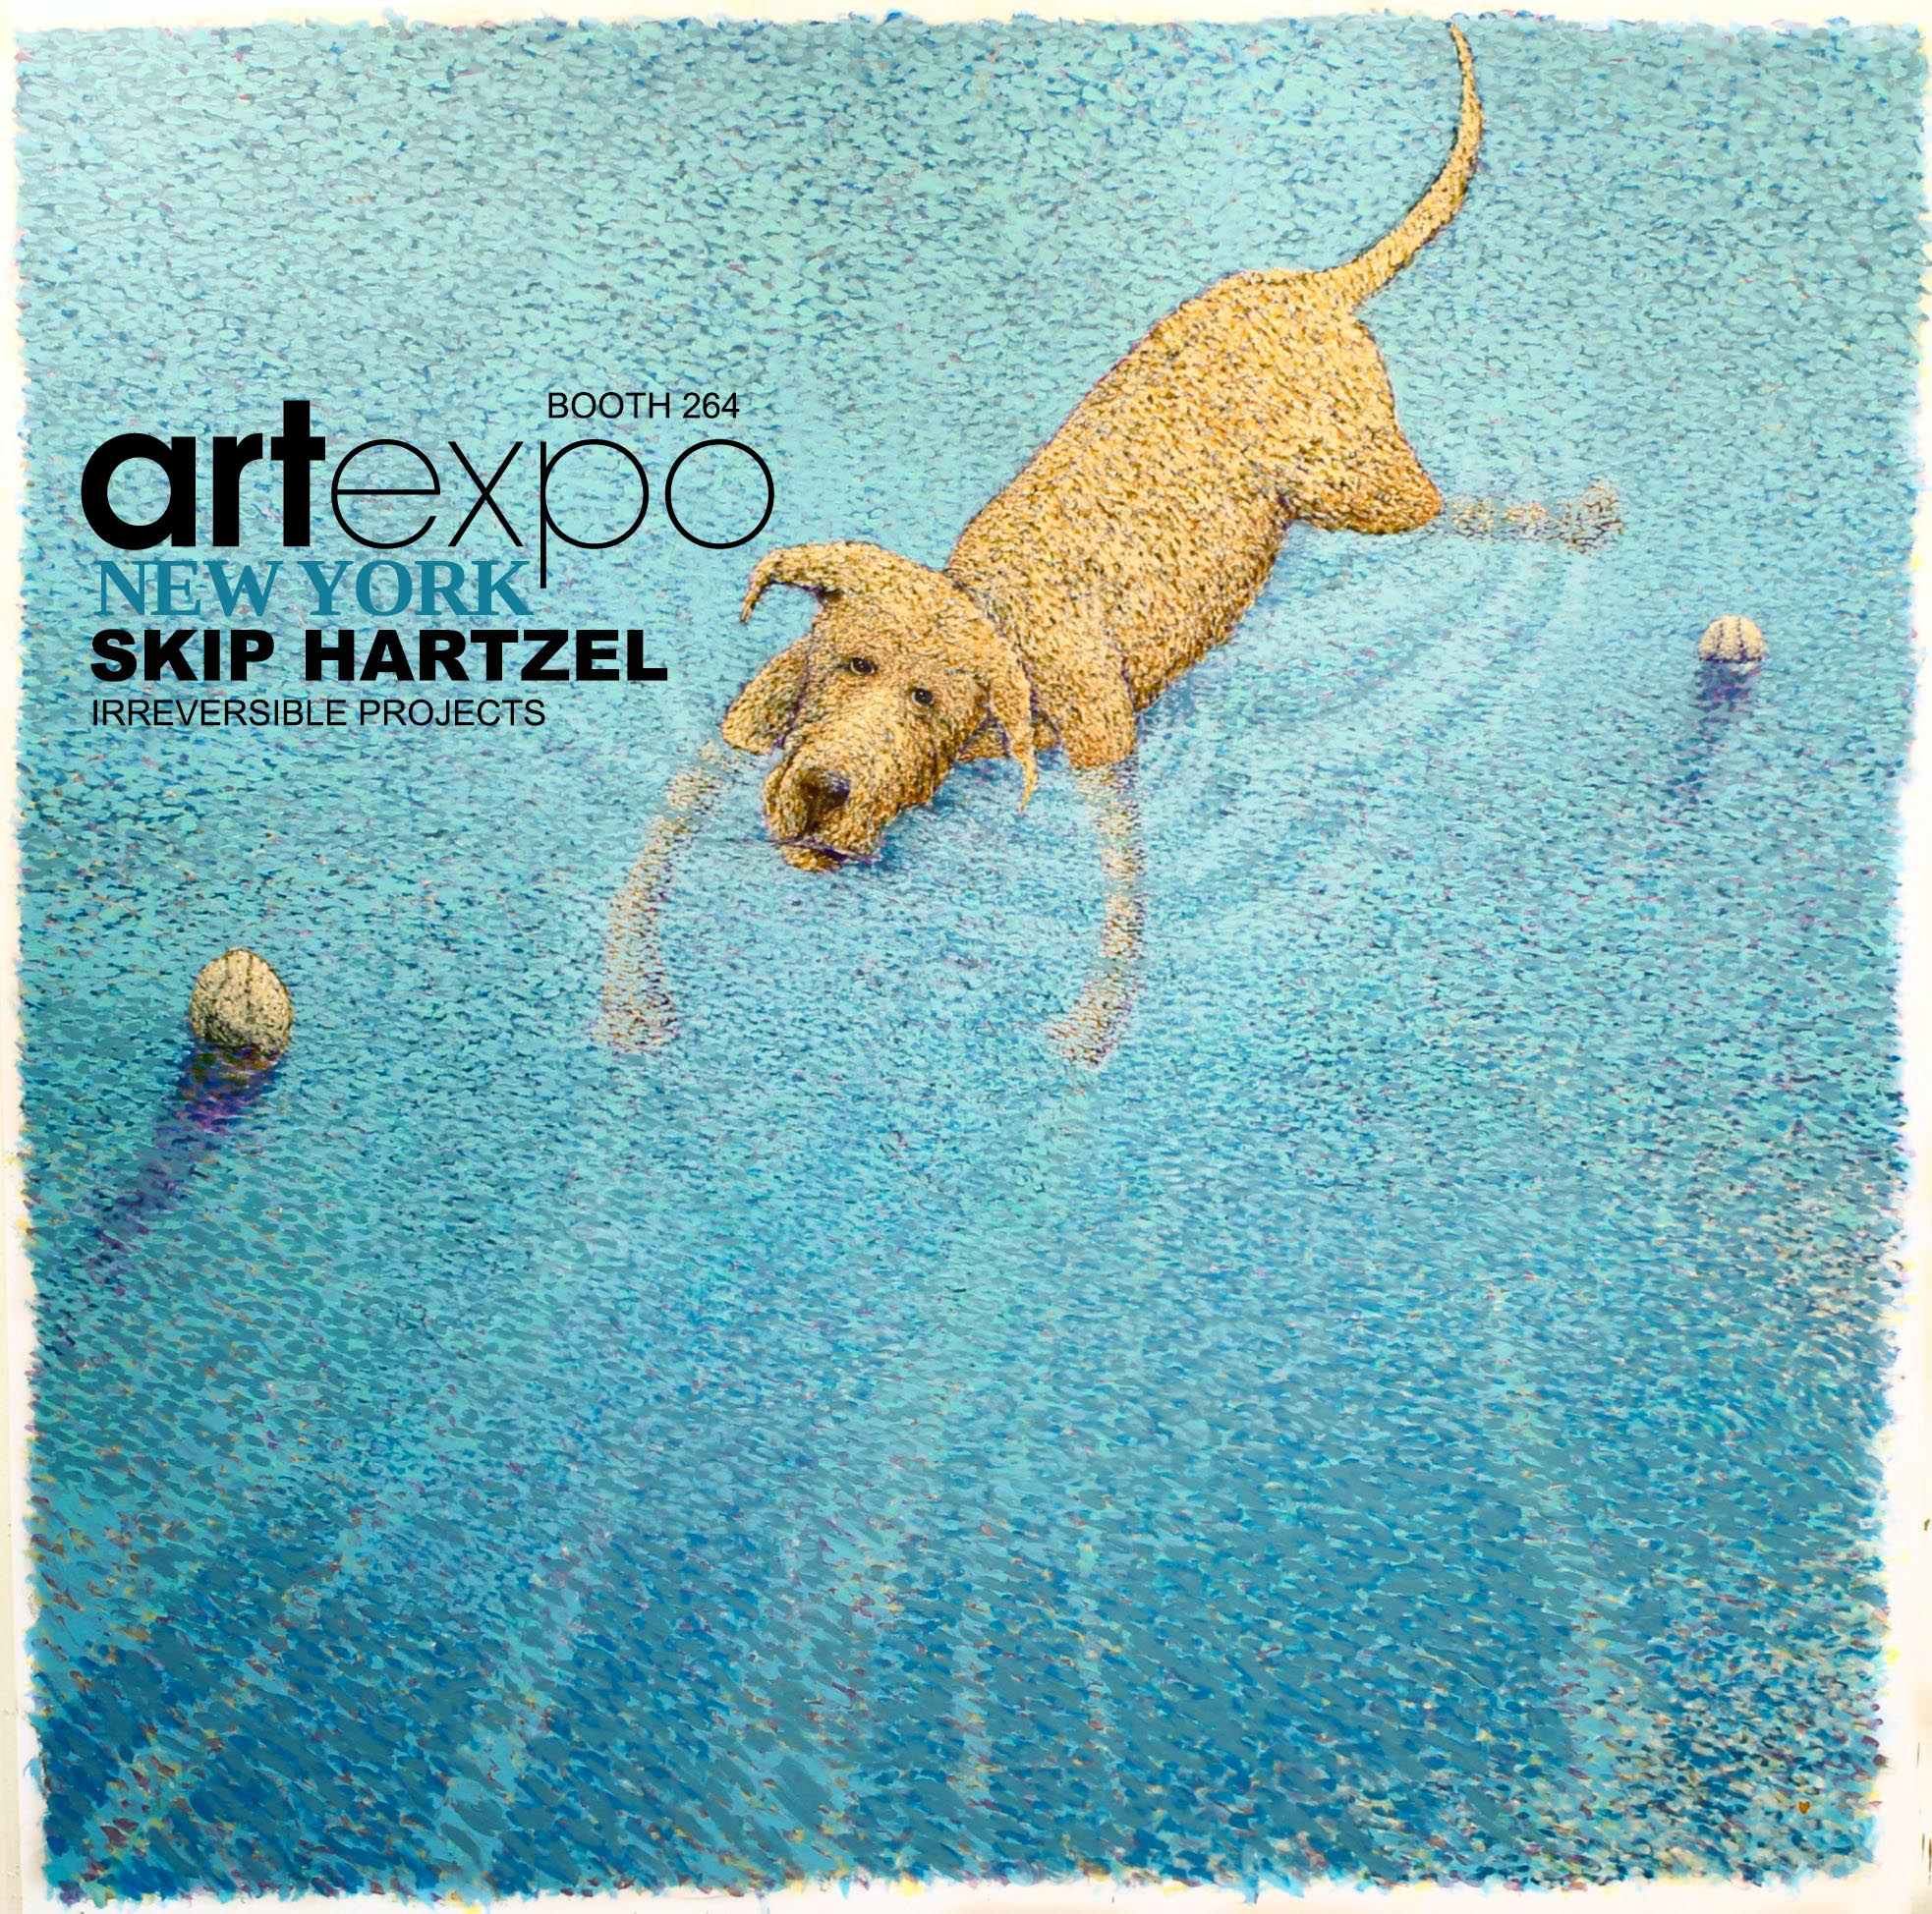 Opening new exhibition SKIP HARTZELL booth 264 ARTEXPO NEW YORK fromThursday, April 19thtoSunday, April 22nd.